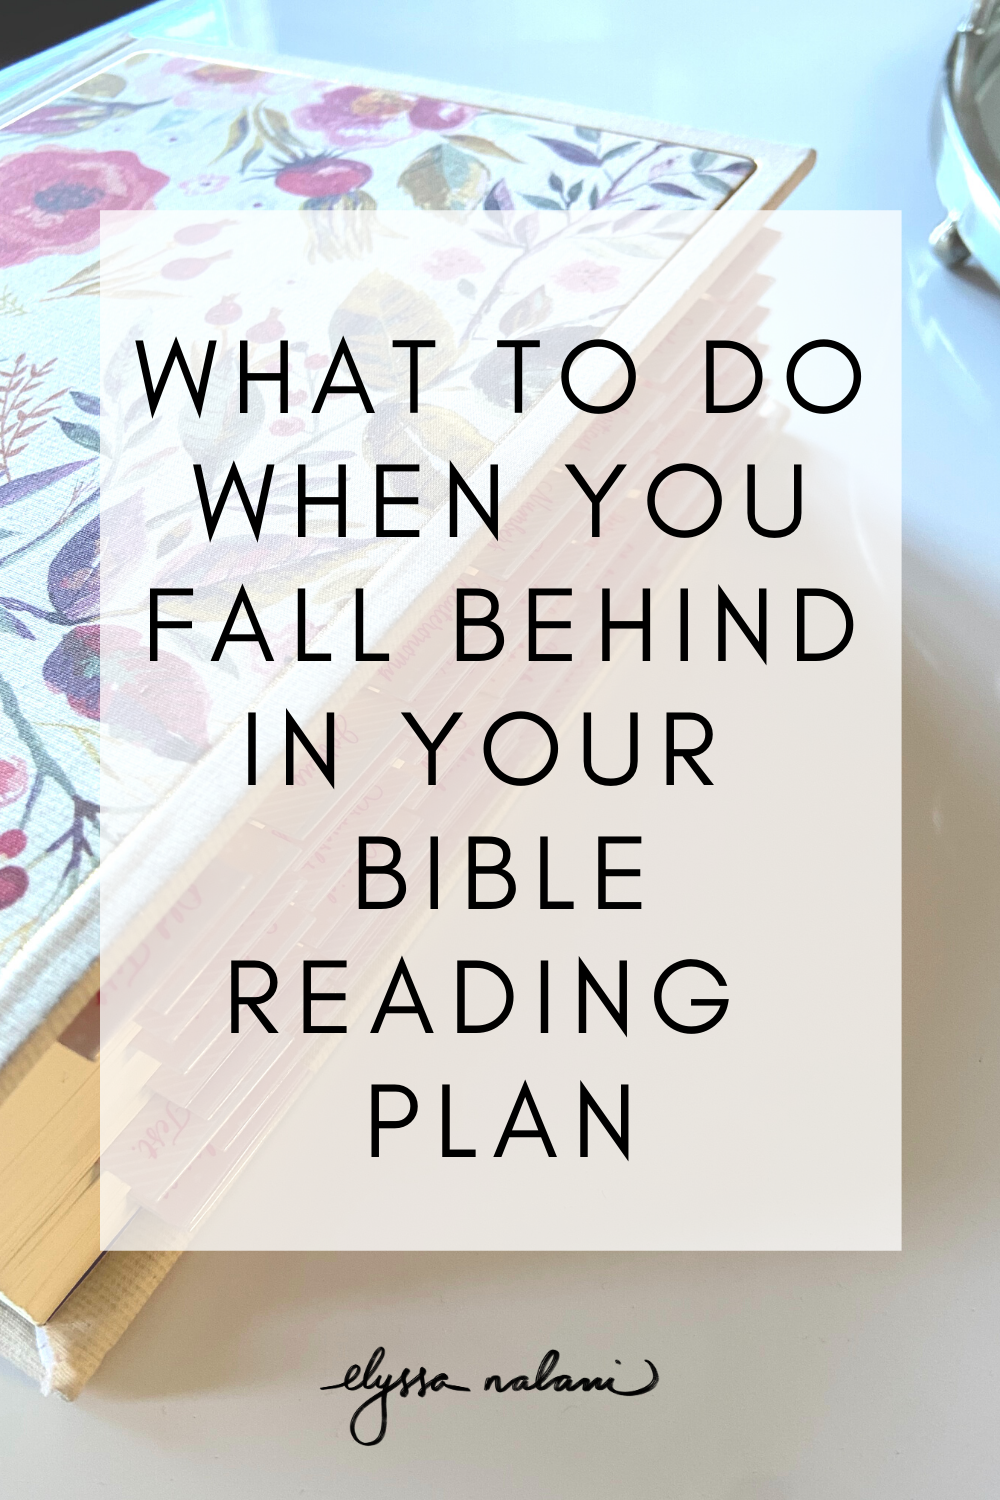 What To Do When You Fall Behind in Your Bible Reading Plan